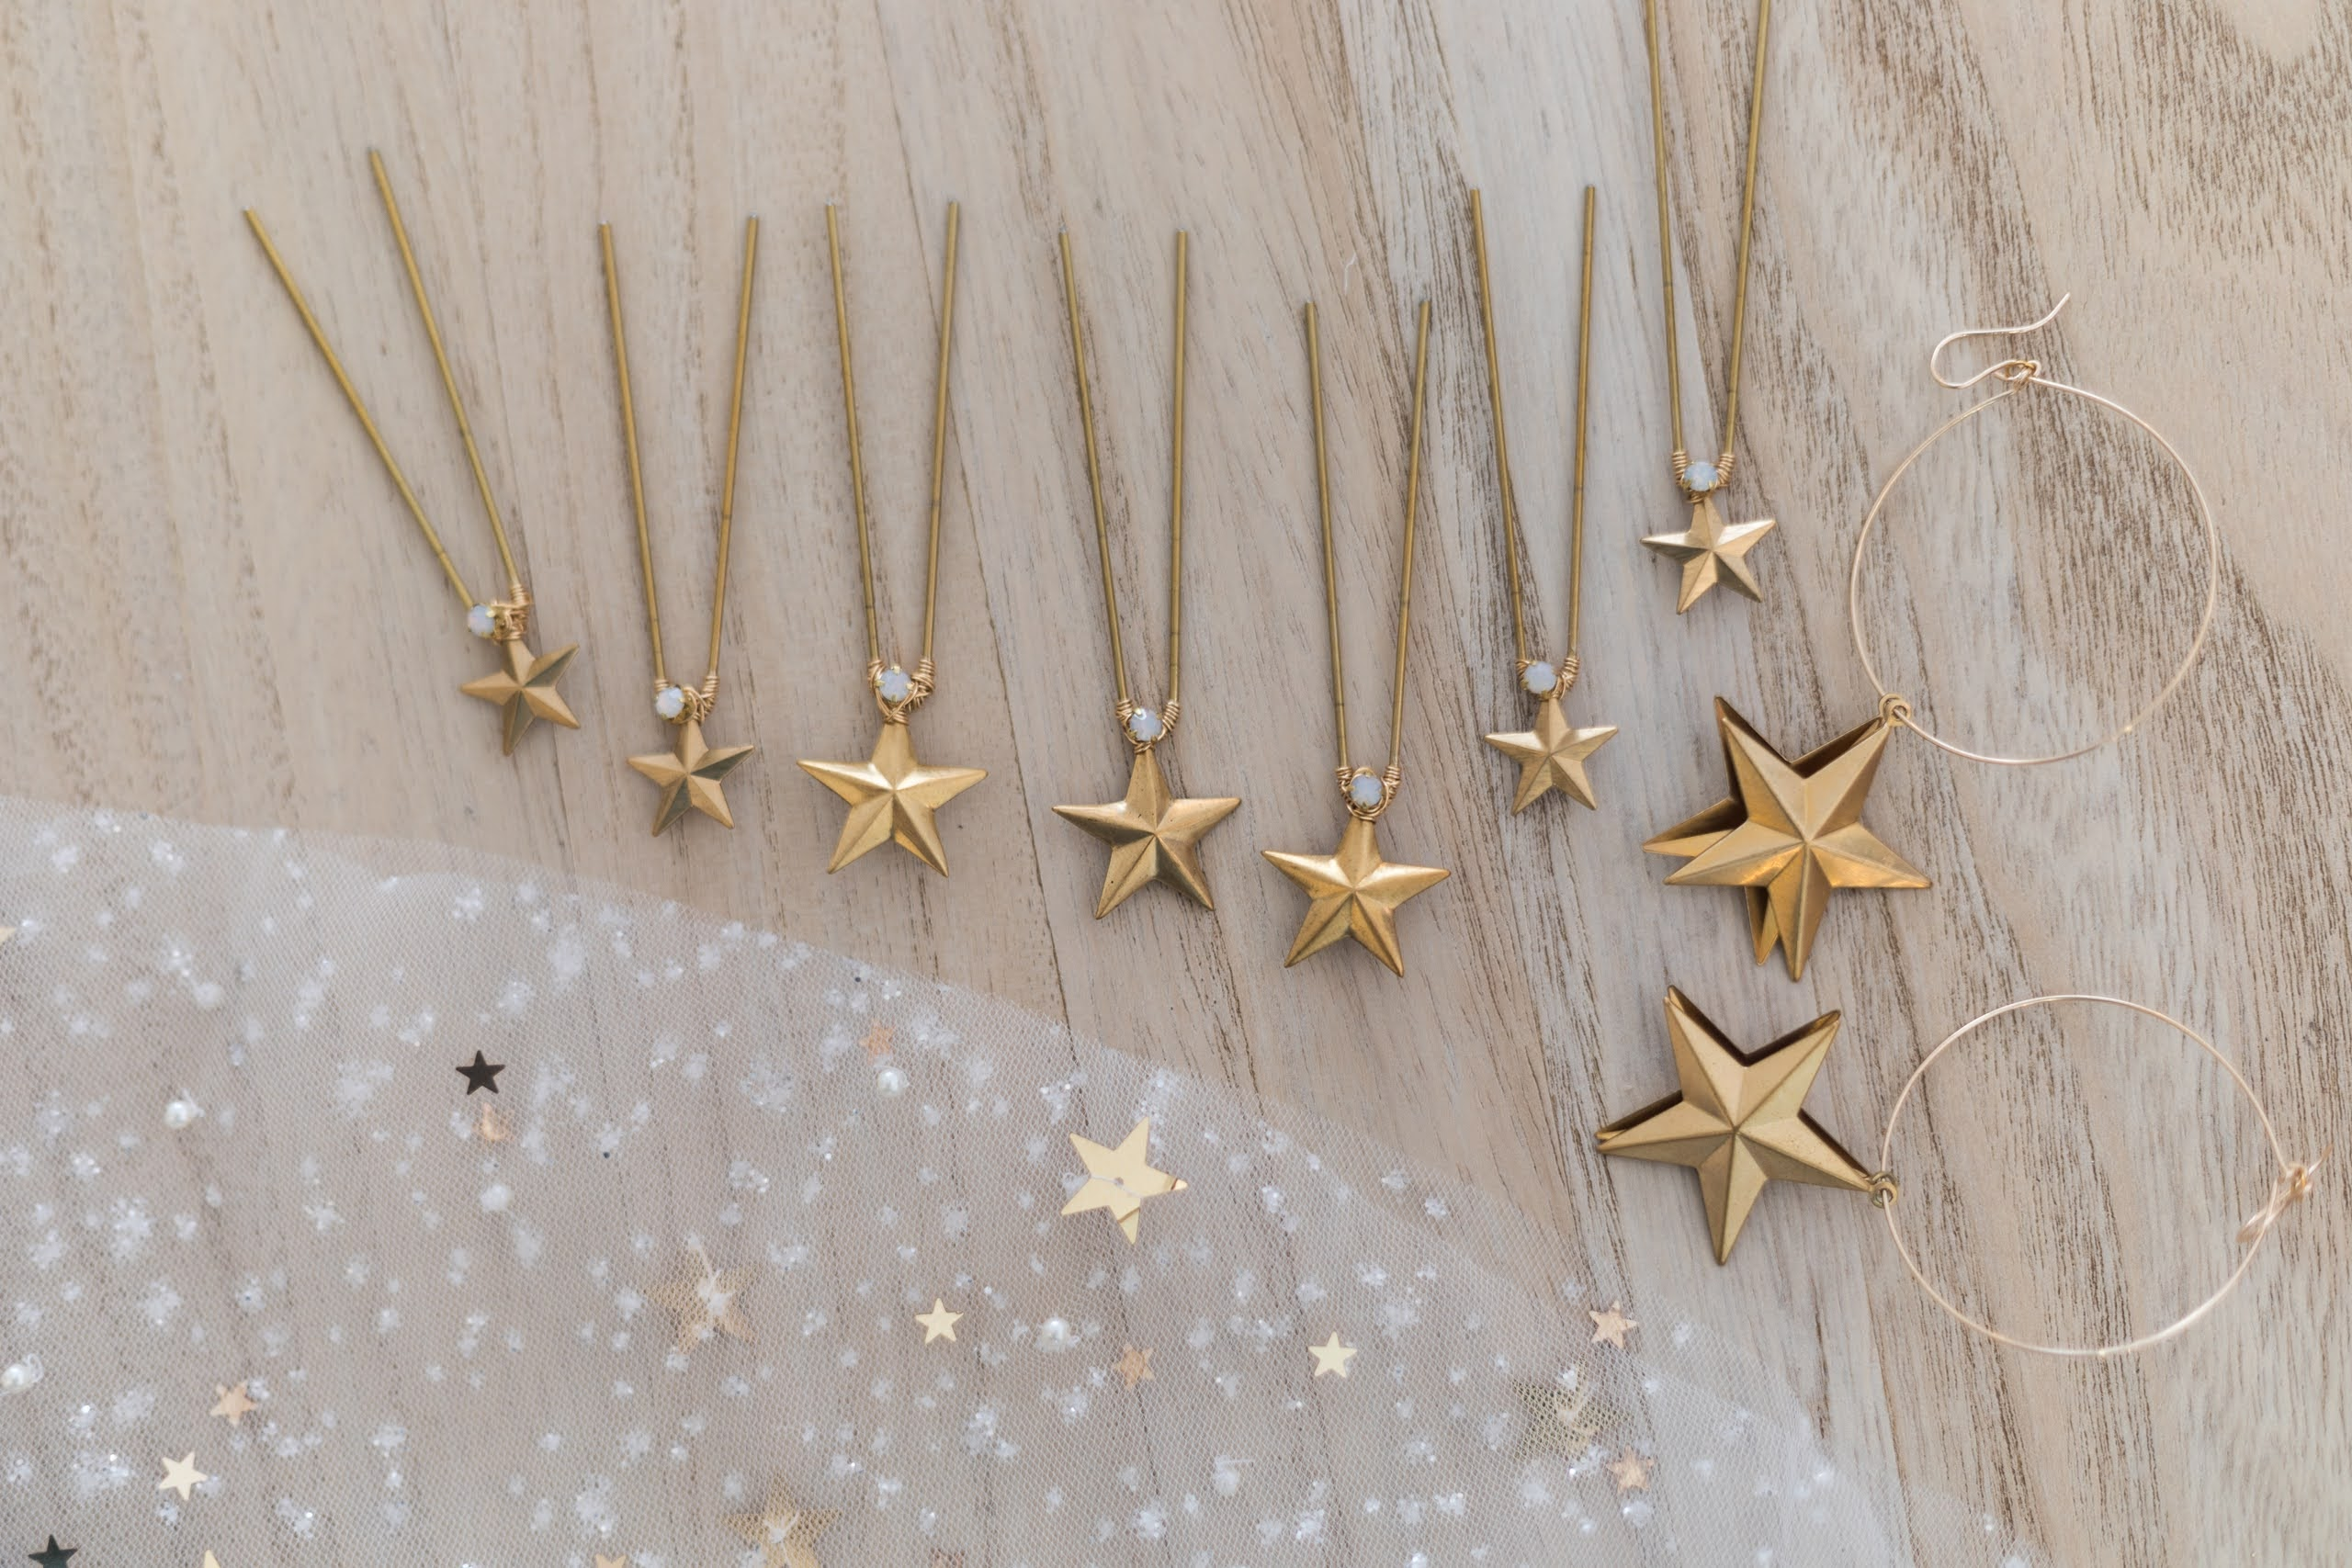 Rare Bridal Studio star accessories close up